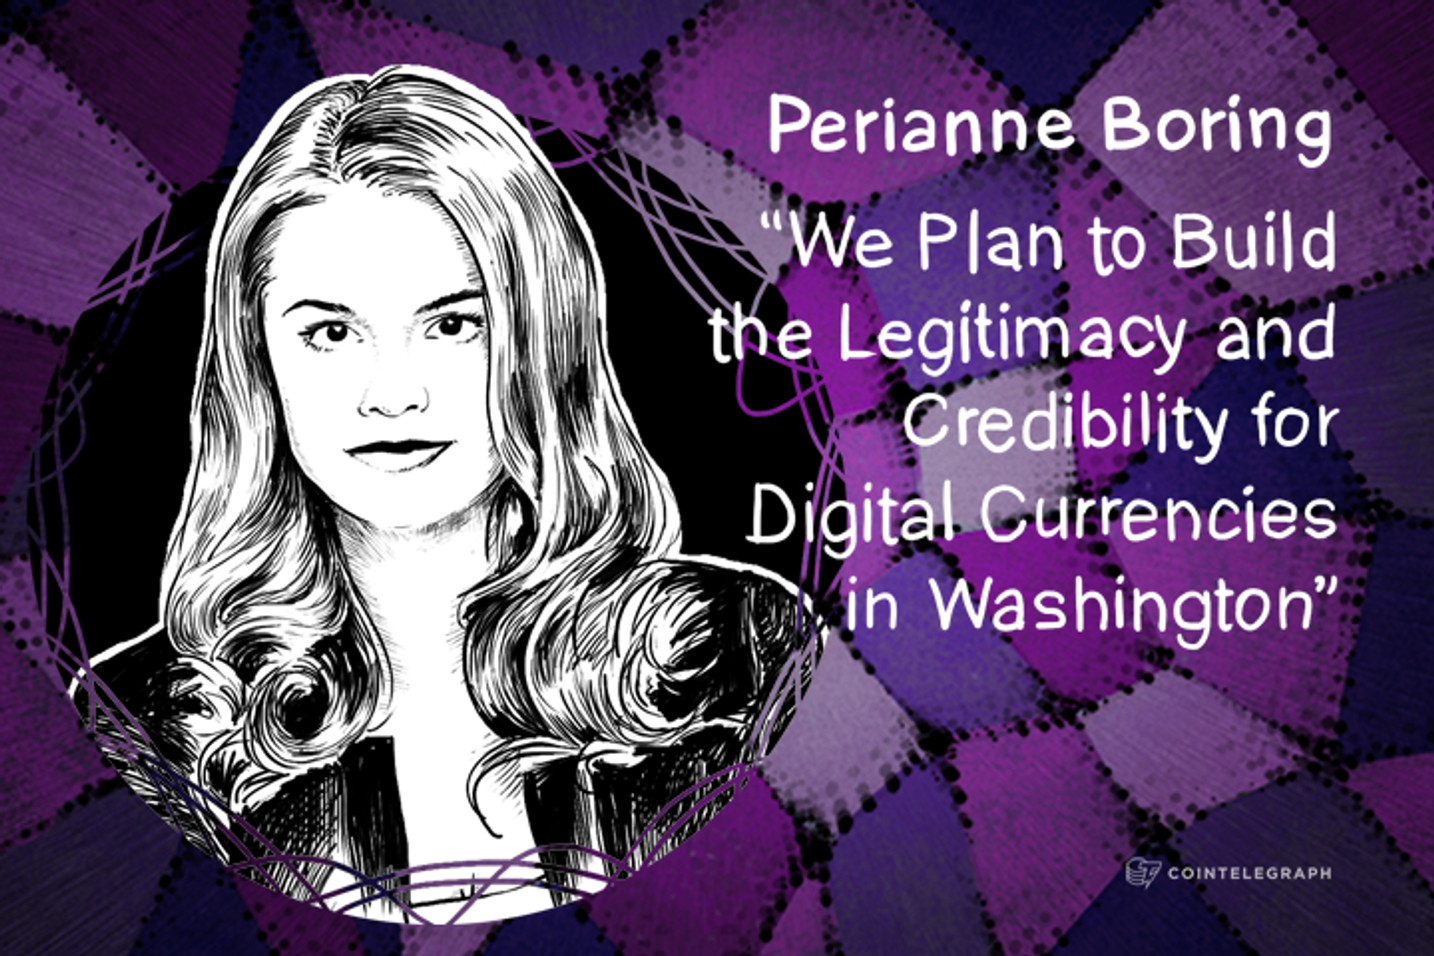 """""""We Plan to Build the Legitimacy and Credibility for Digital Currencies in Washington"""" - Interview with Perianne Boring from Forbes"""